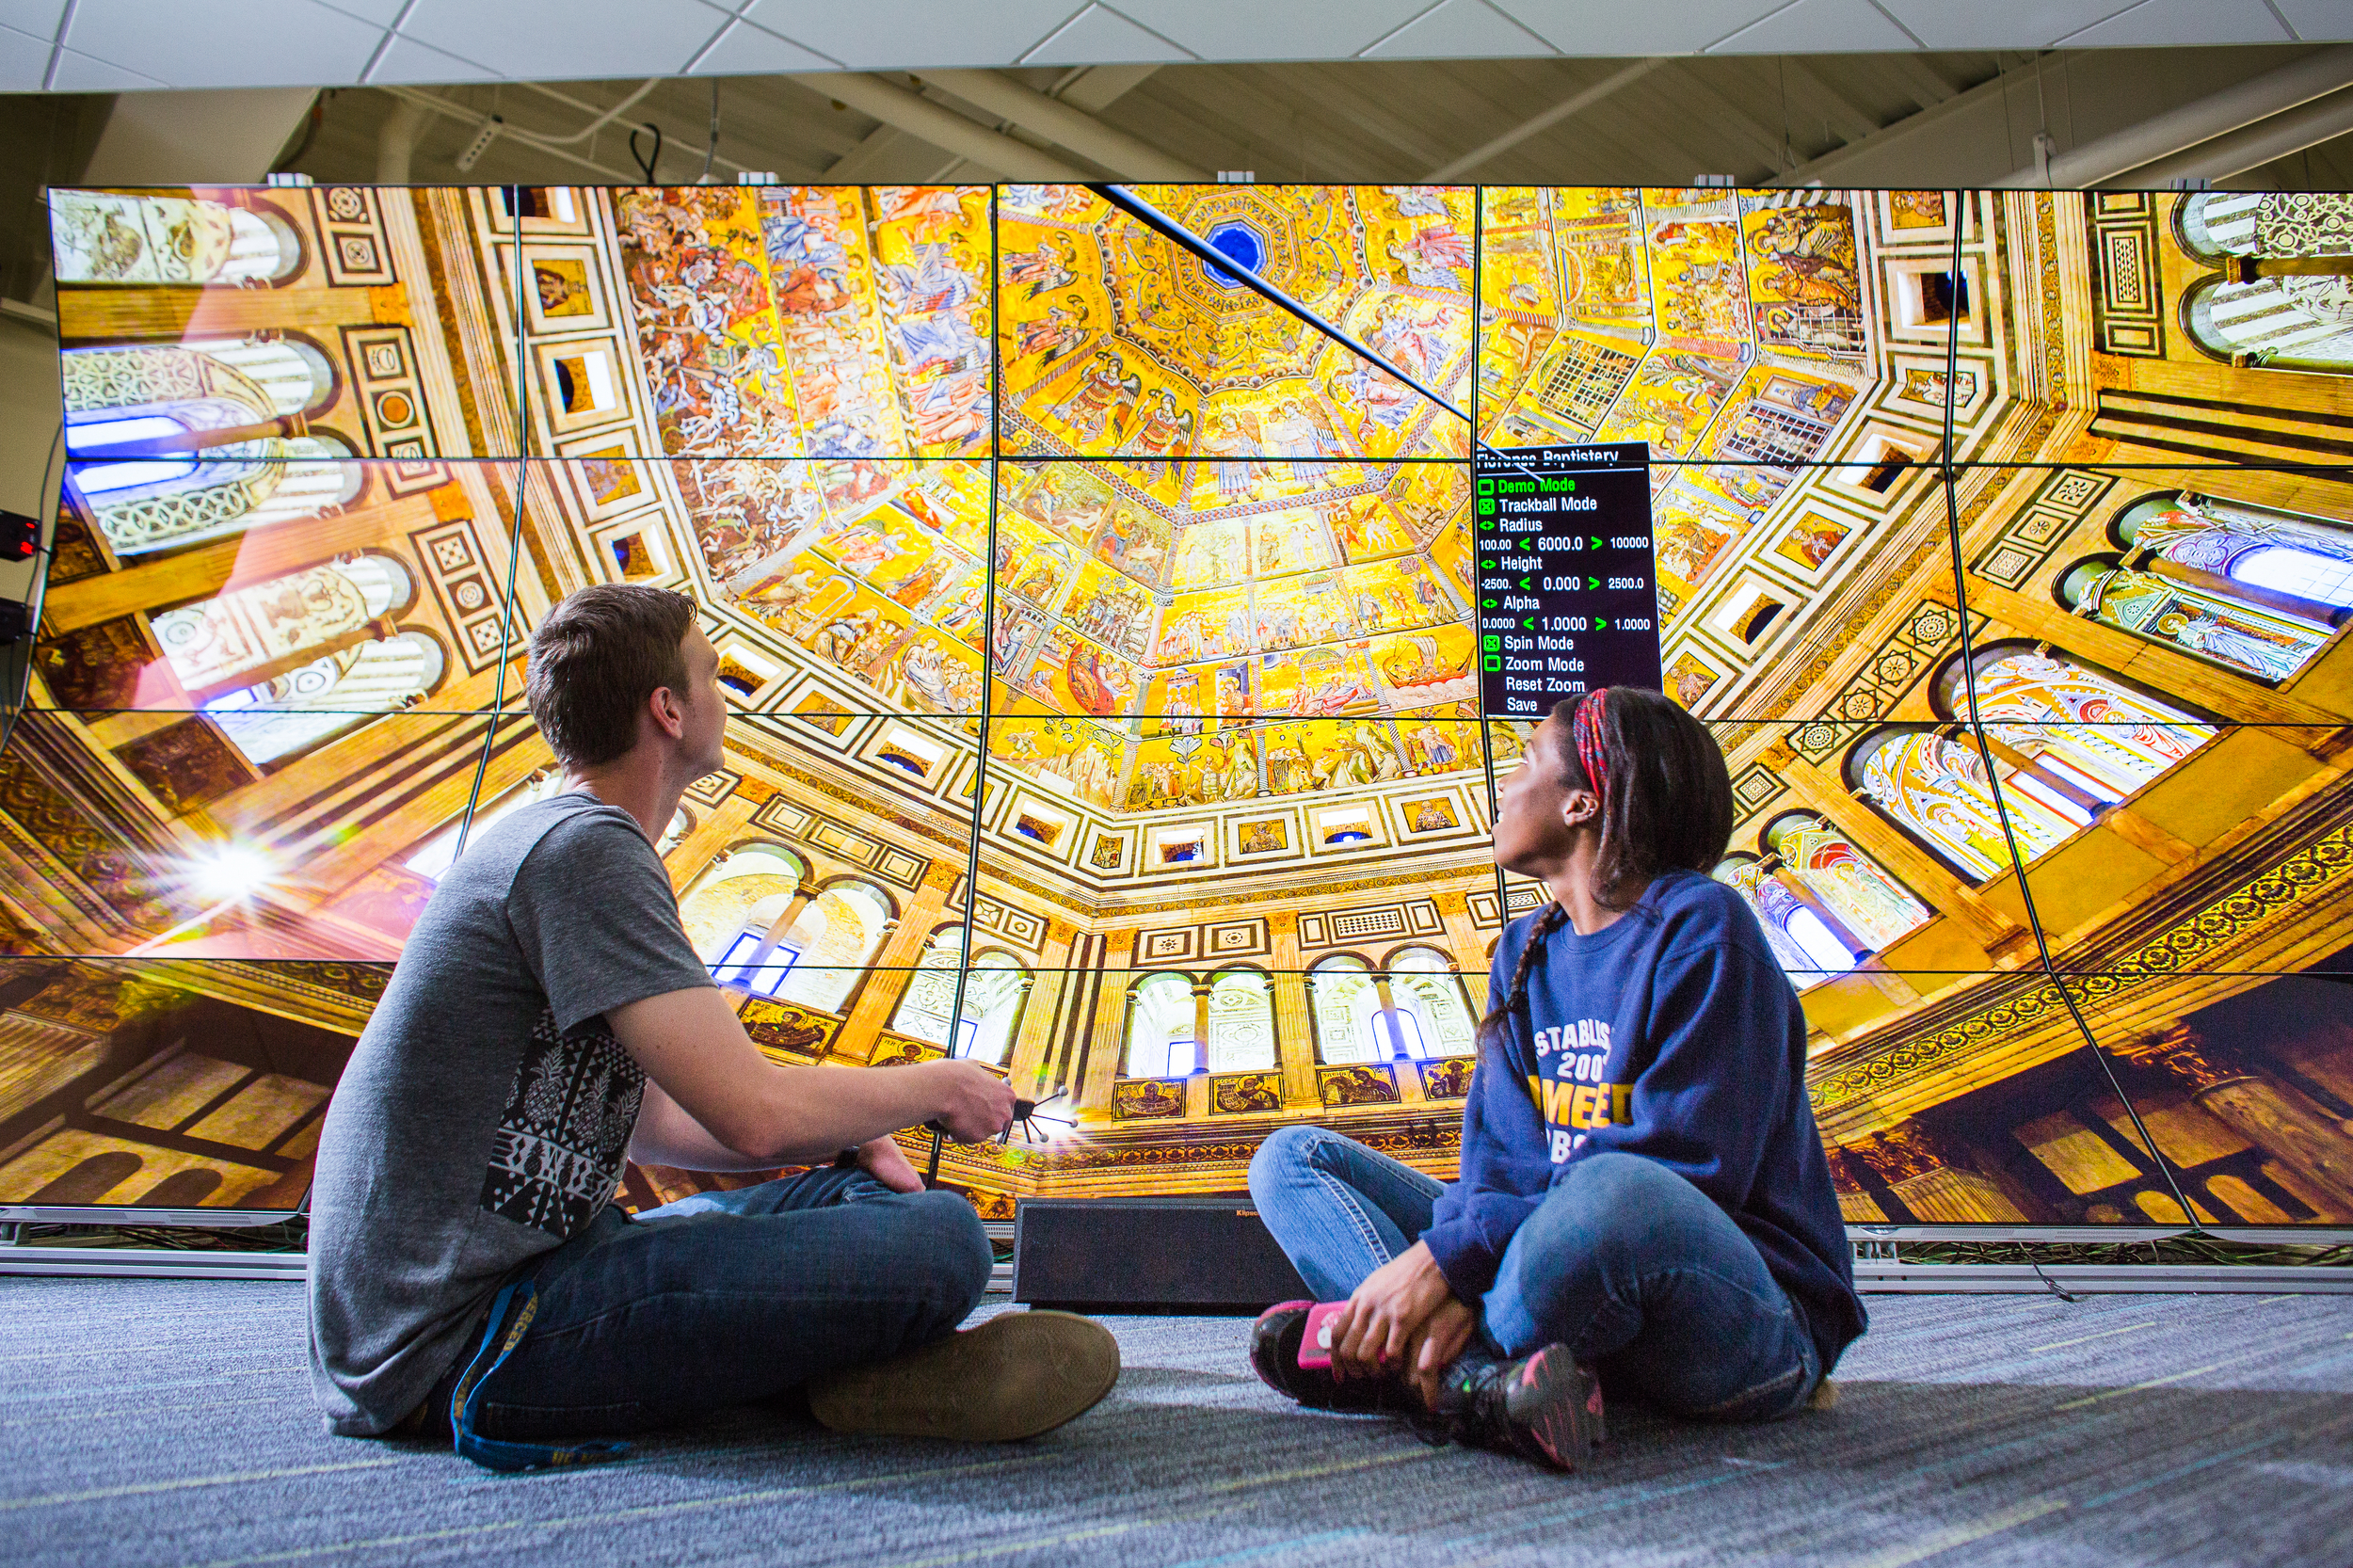 Students sitting in front of the WAVE Lab, where a large image of an ornate church ceiling is shown